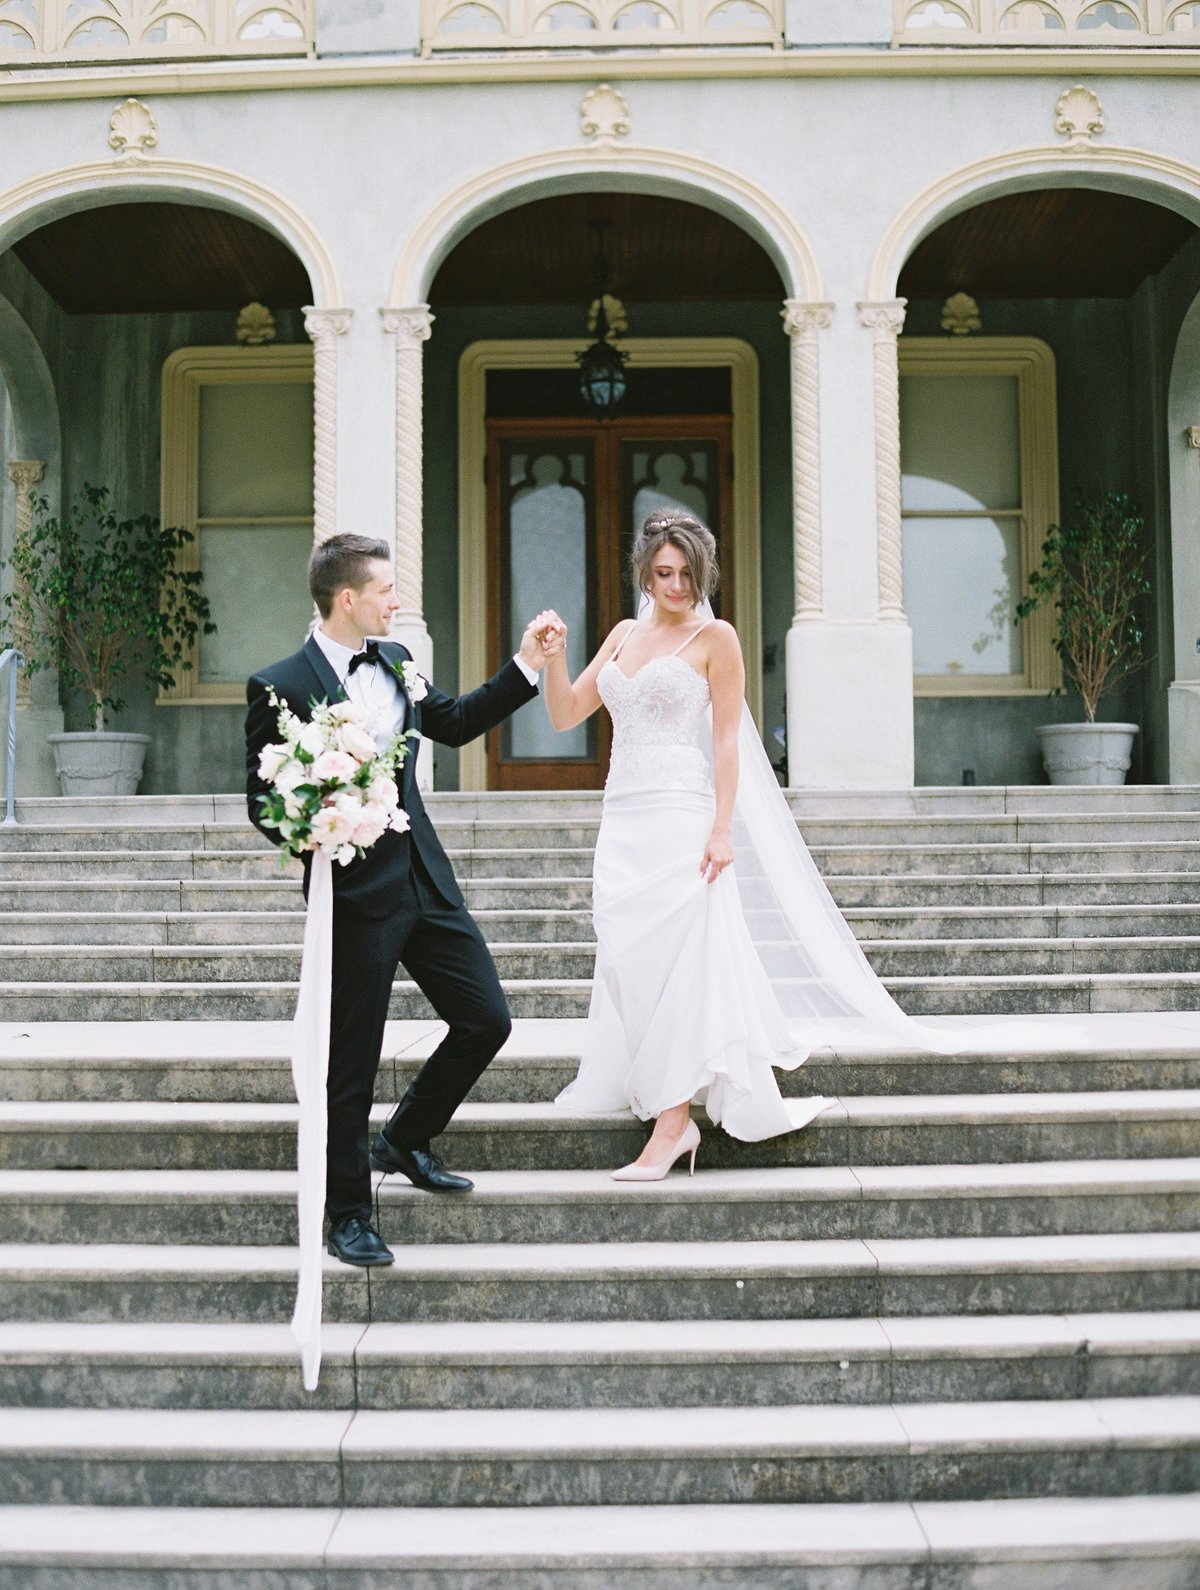 daniel-and-bethany-weddings-walking-down-stairs